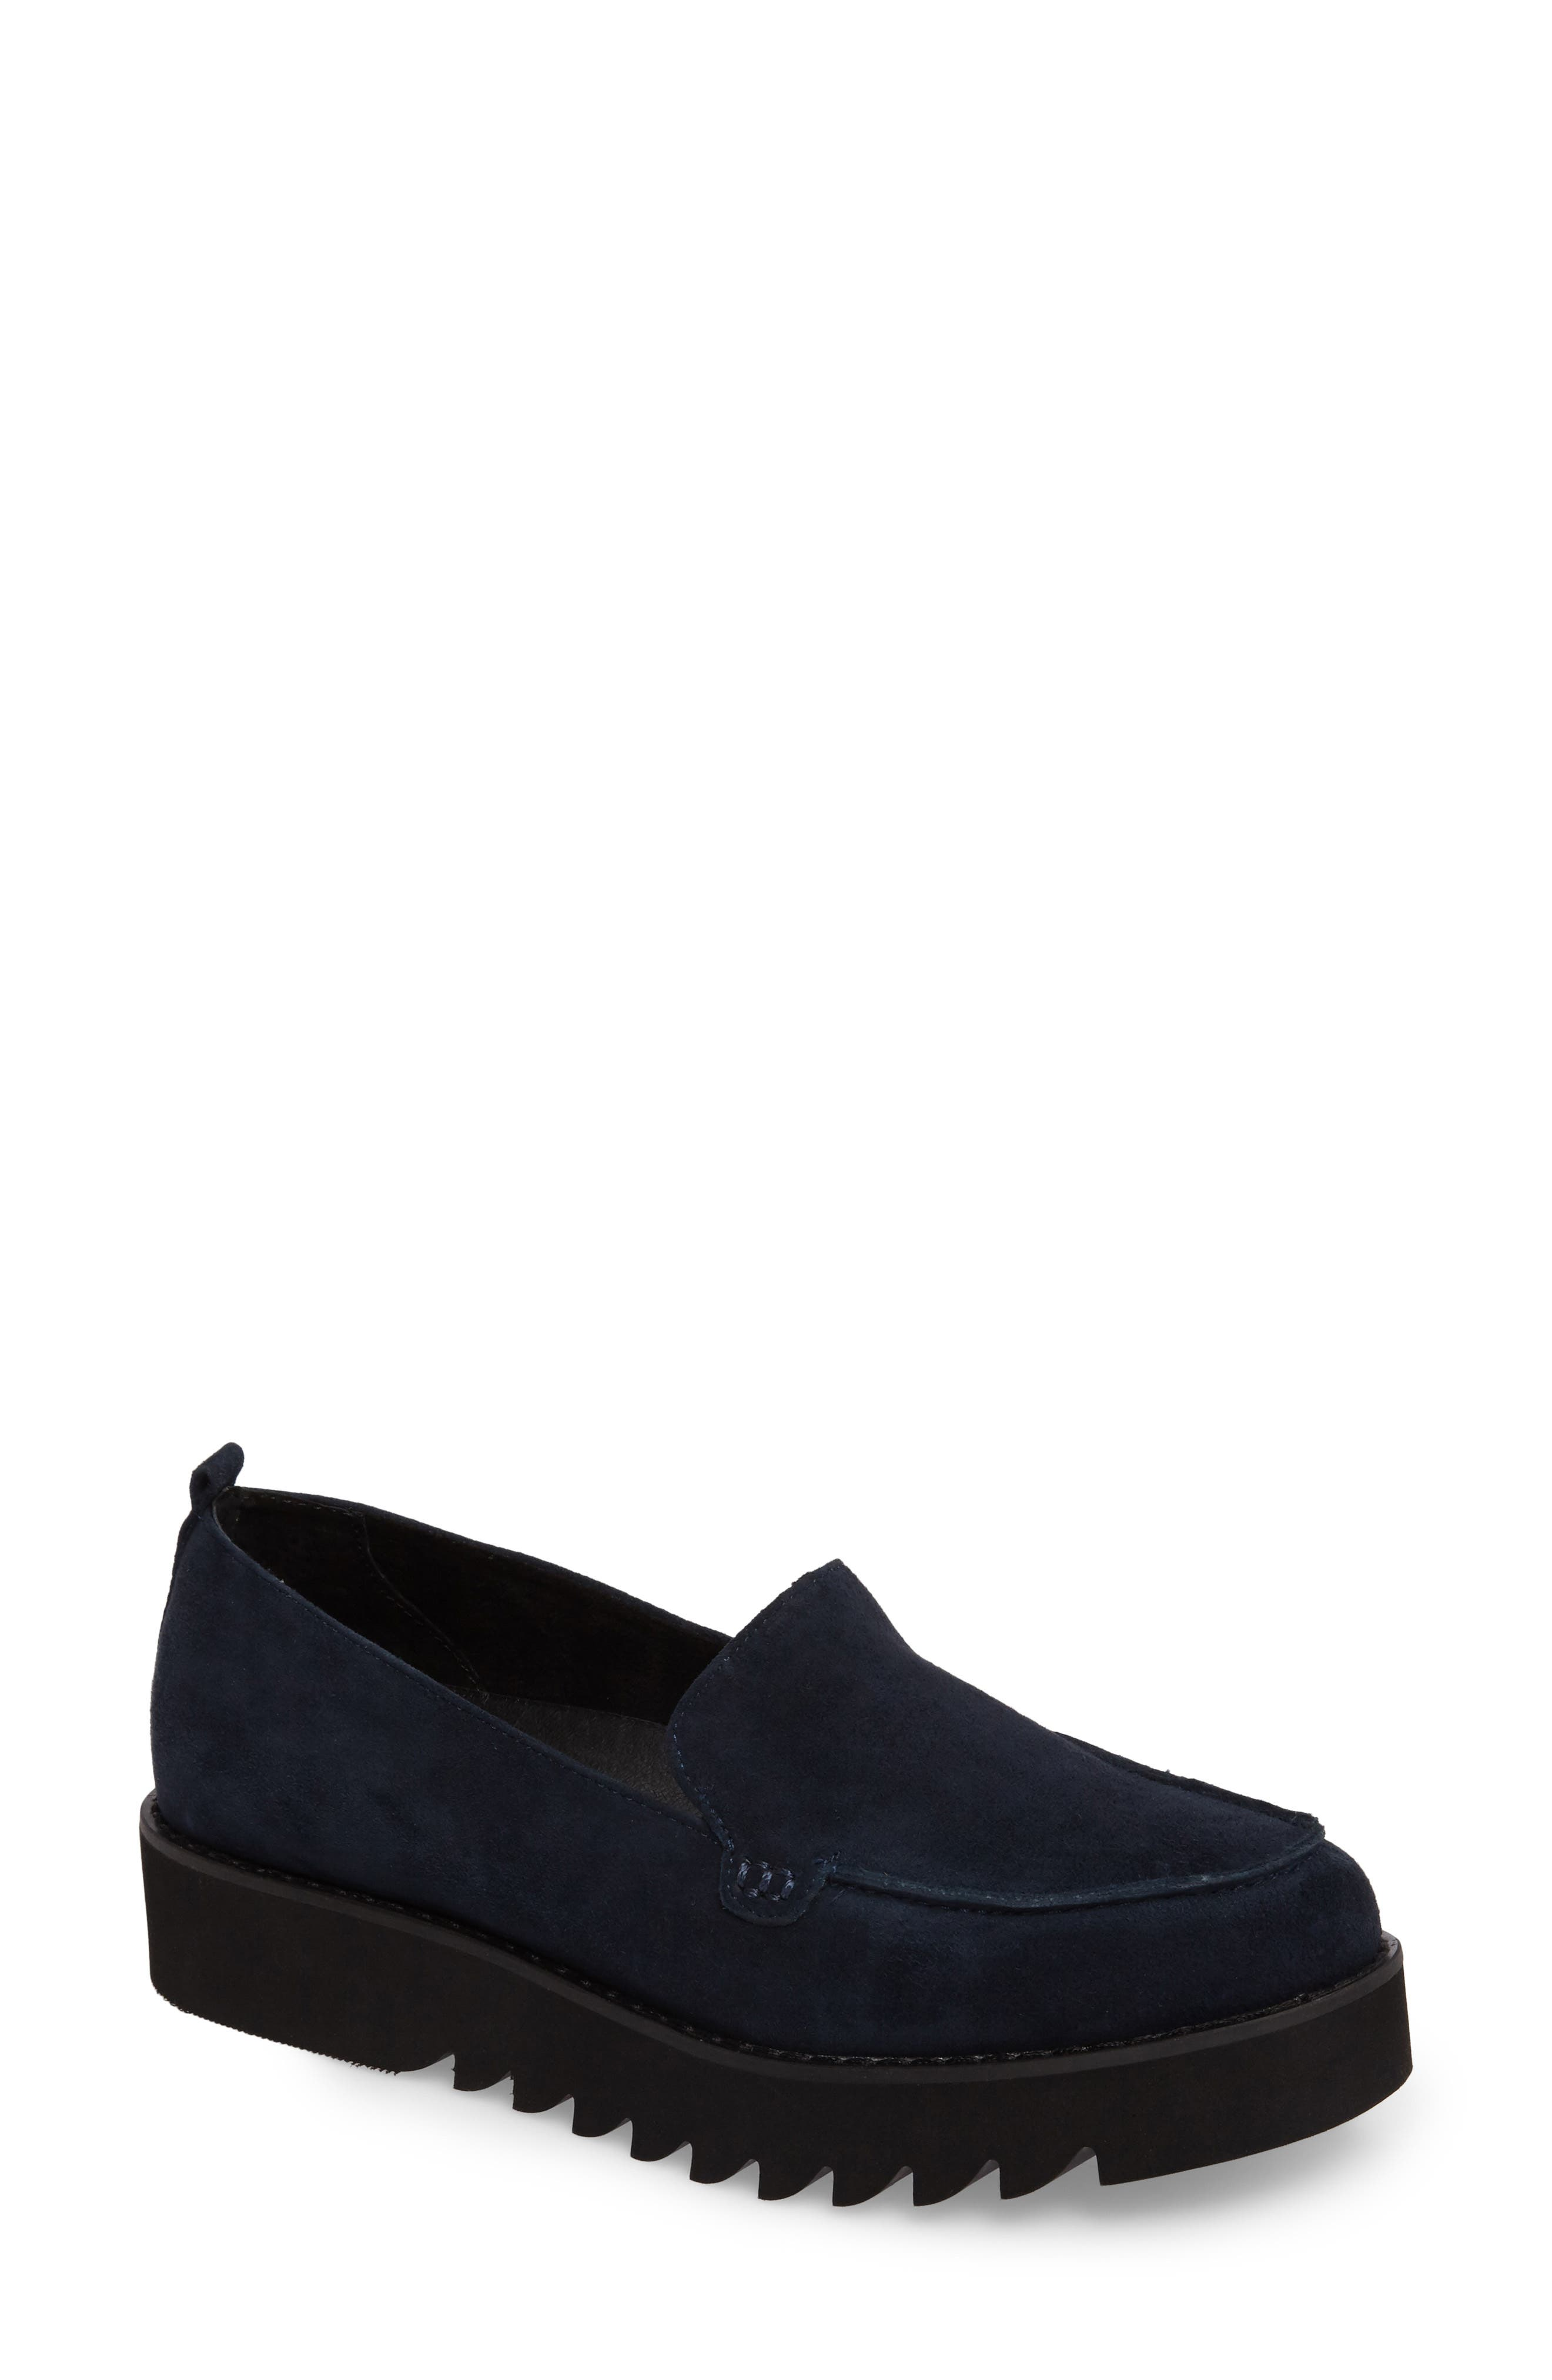 Main Image - Sudini Kendall Loafer (Women)